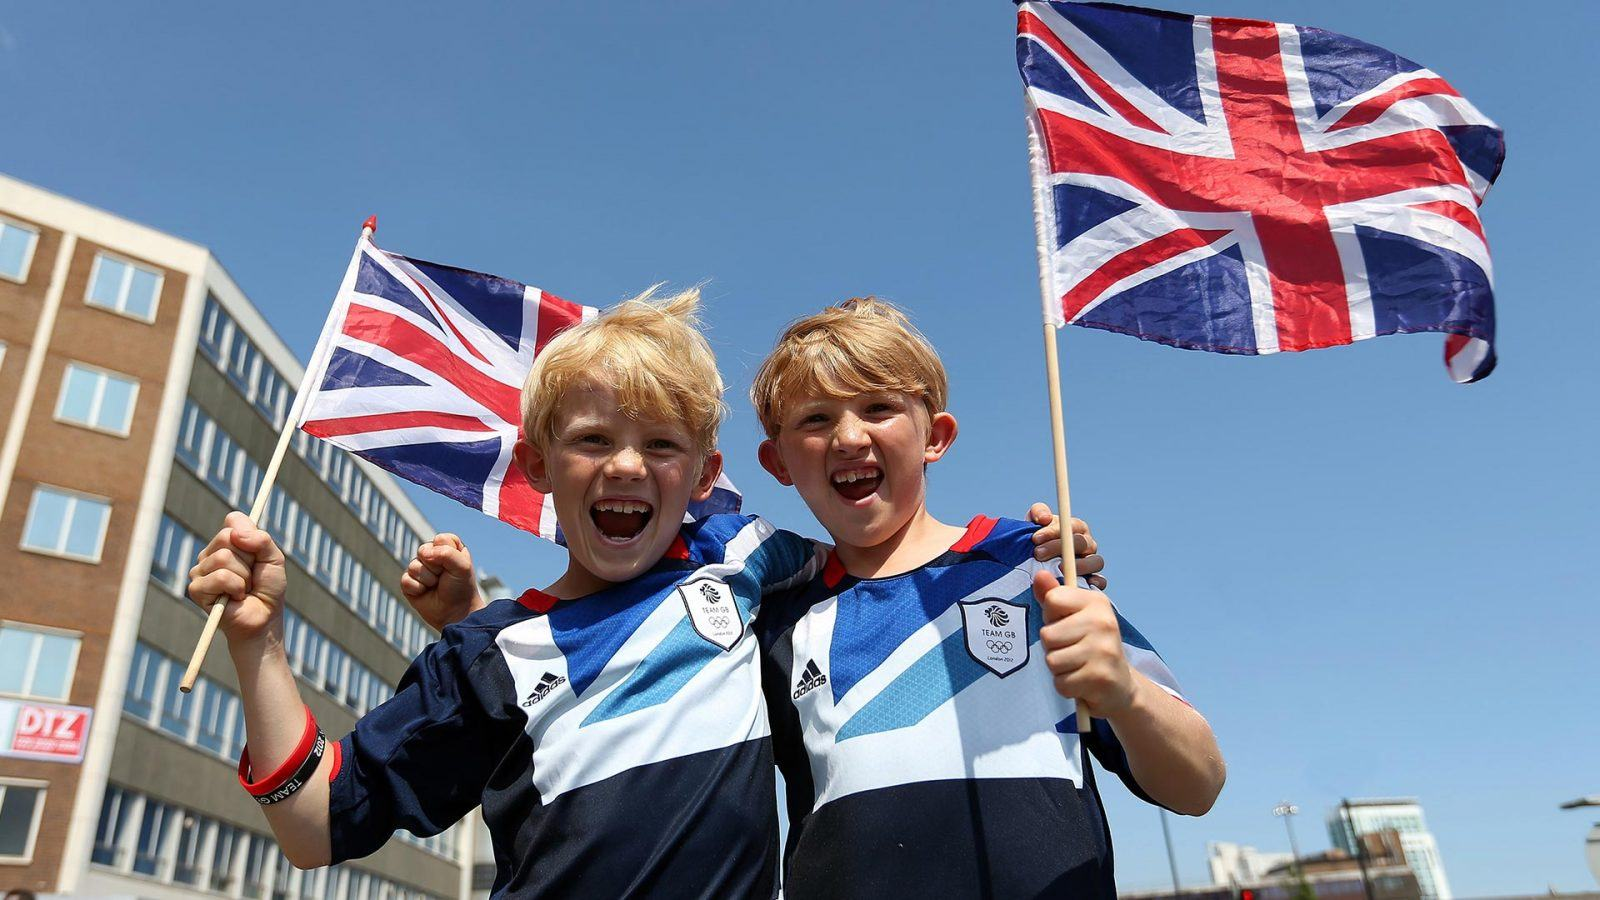 Team GB fans at London 2012